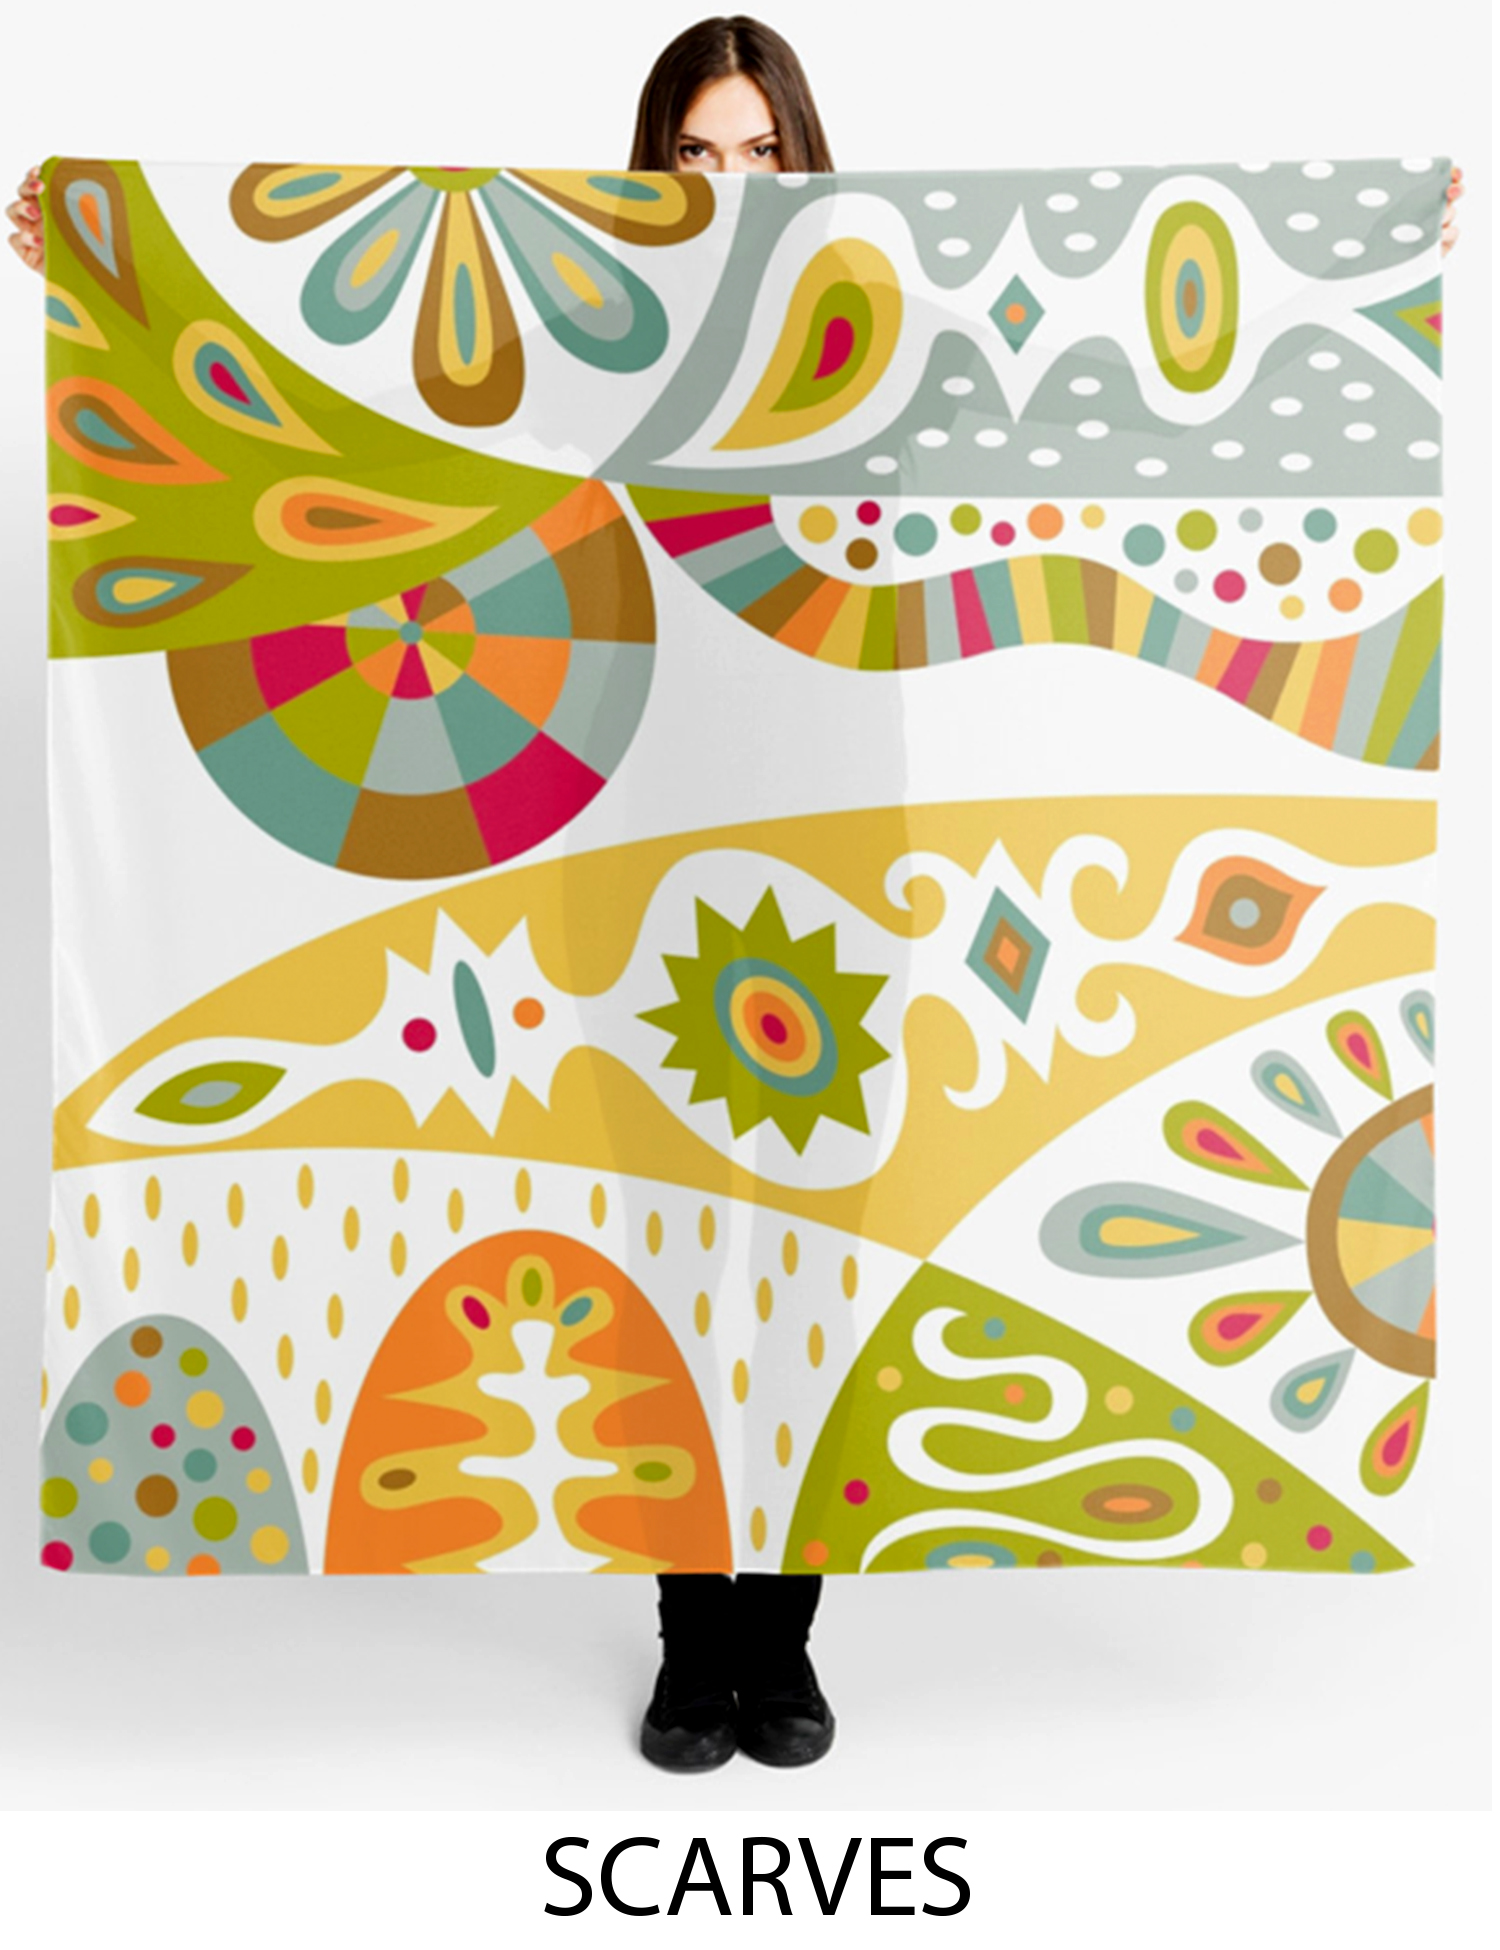 Scarves by Andi Bird